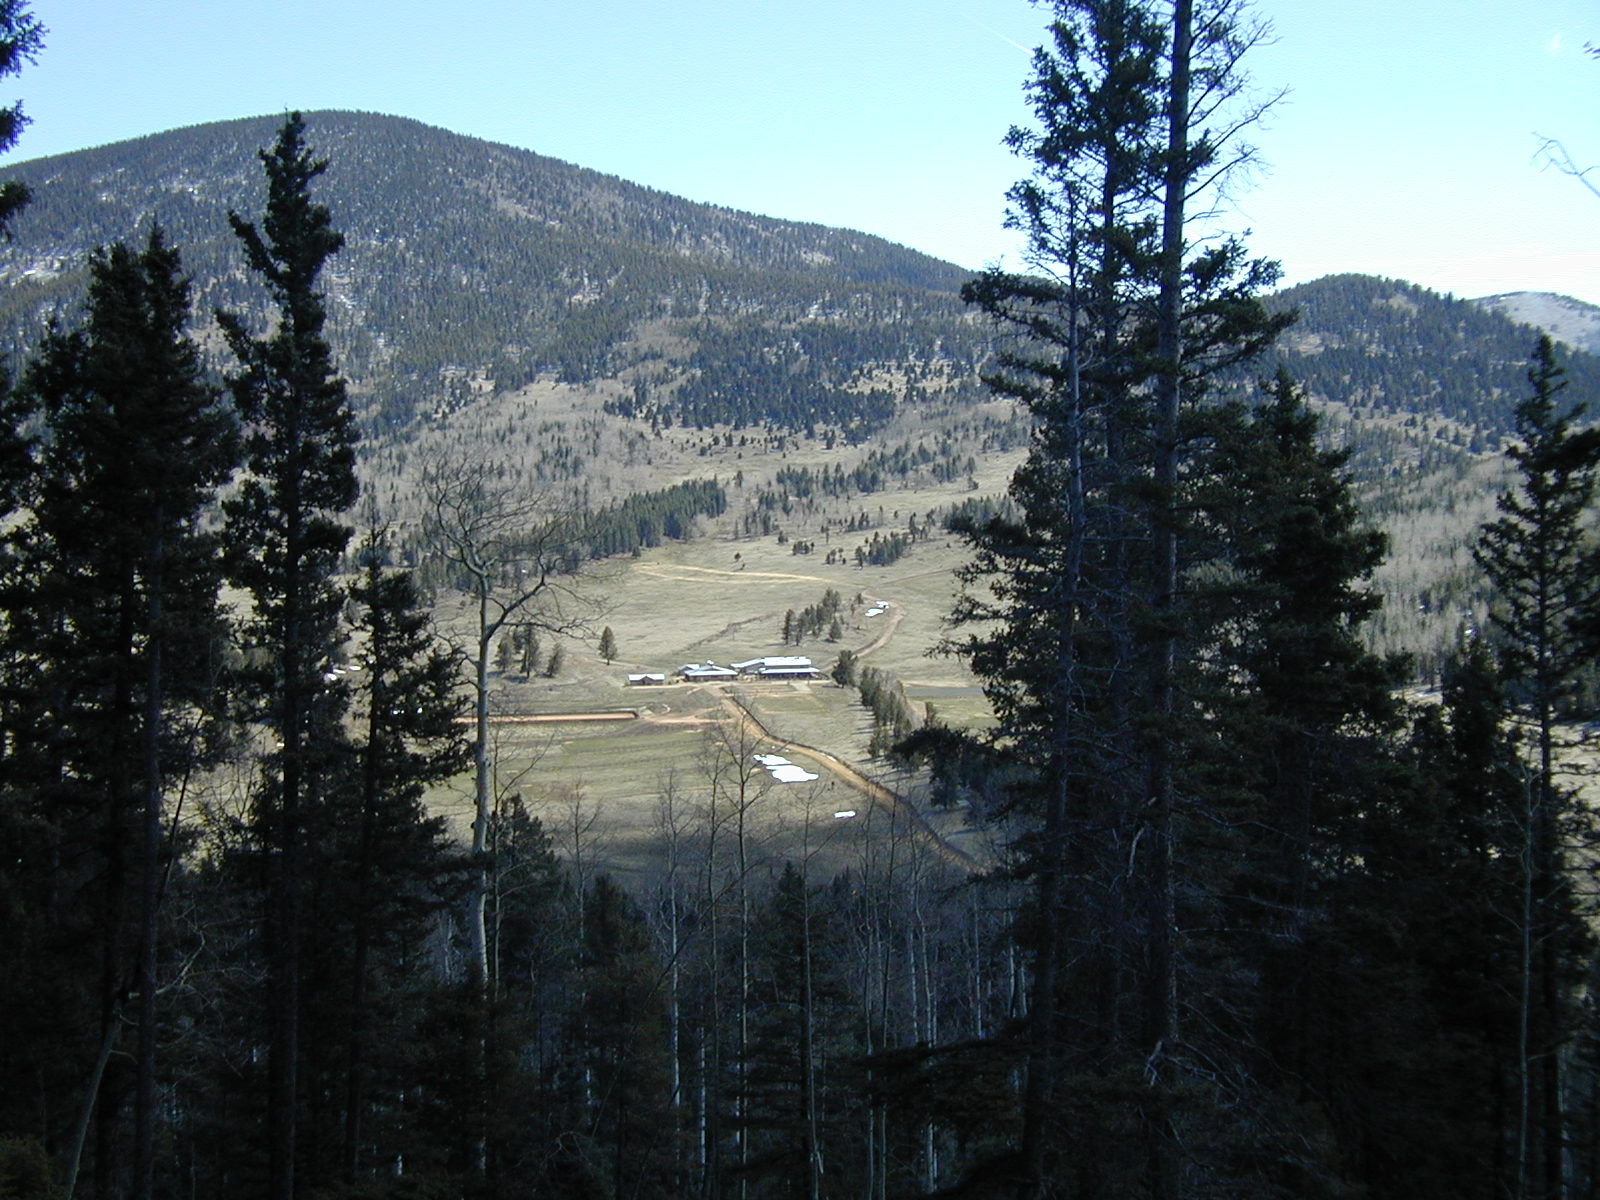 Gray Wolf Ranch   Sale Price: Undisclosed Location: Chacon, New Mexico Size: +/- 6,800 Acres